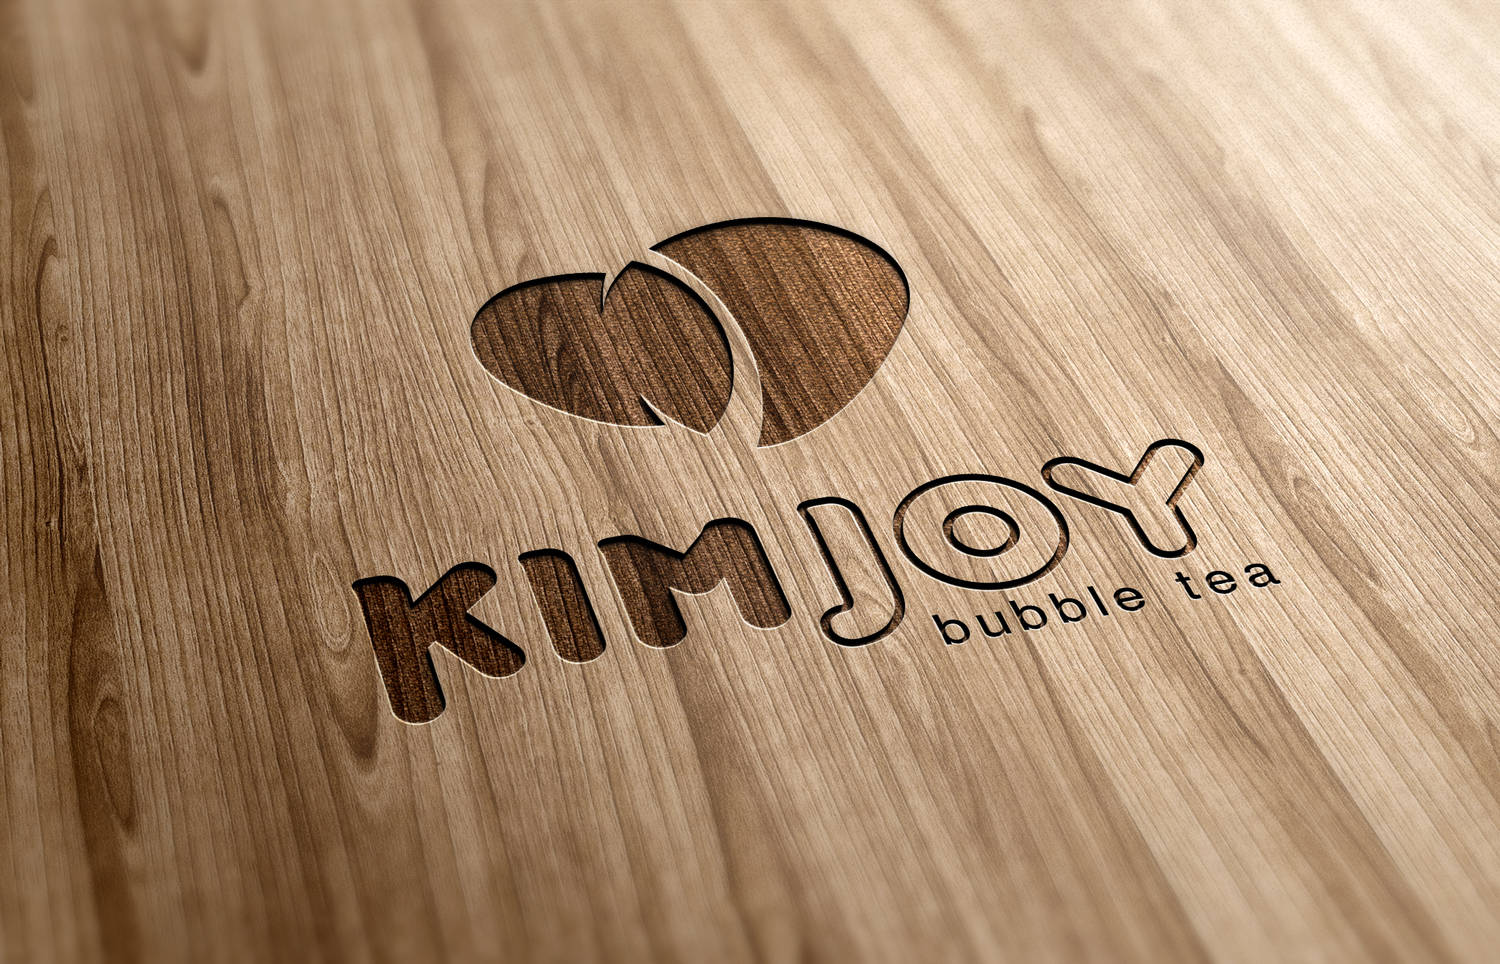 Kim Joy bubble tea - logotype